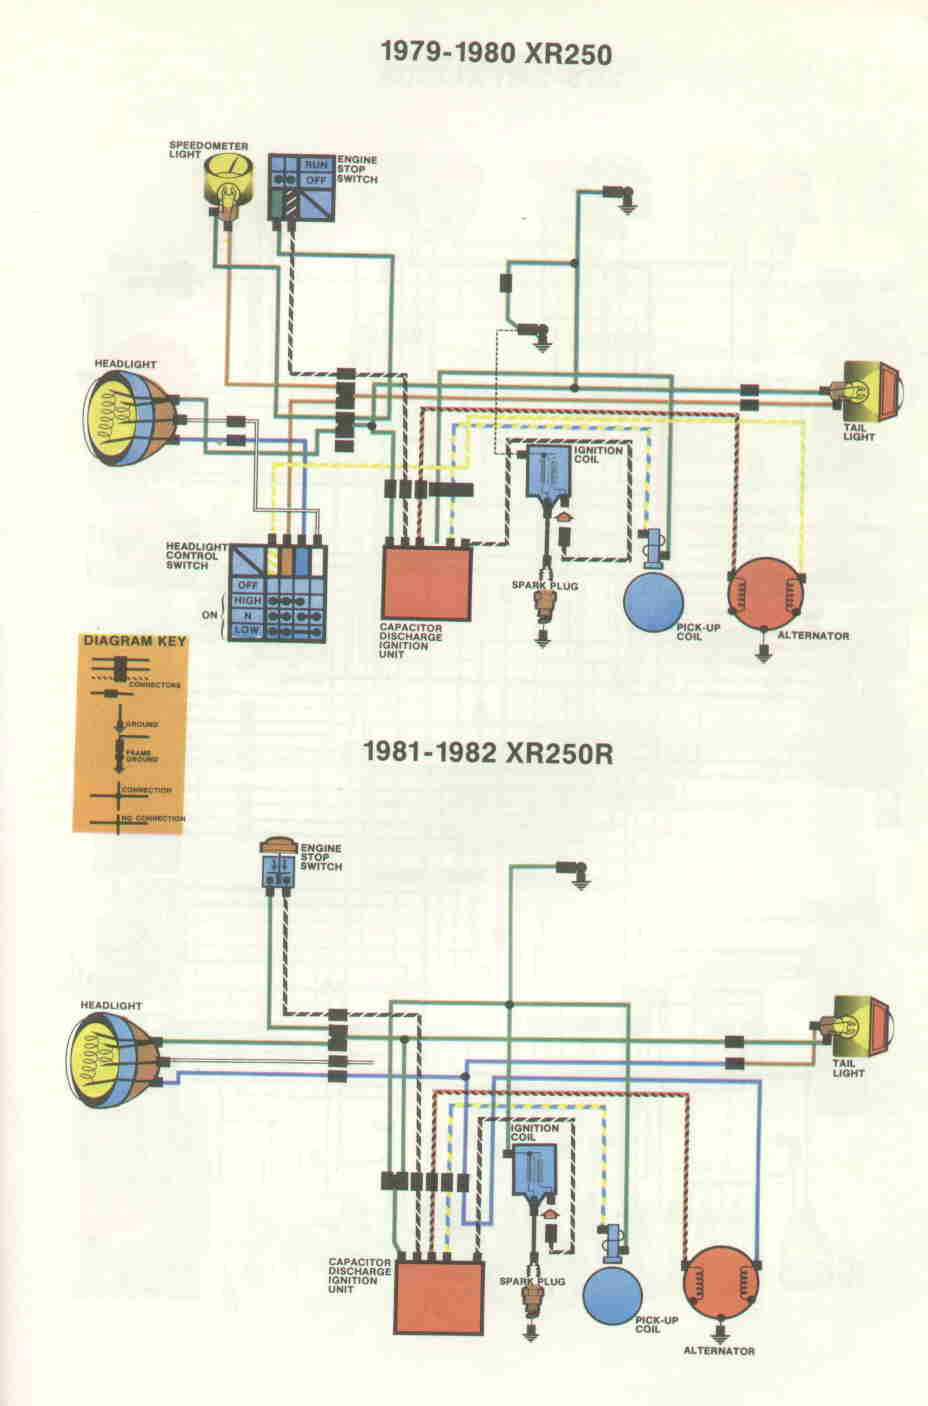 79 82XR250 honda xr 250 wiring diagram xr200r 1990 headlight wiring diagram honda trx200 wiring diagram at edmiracle.co